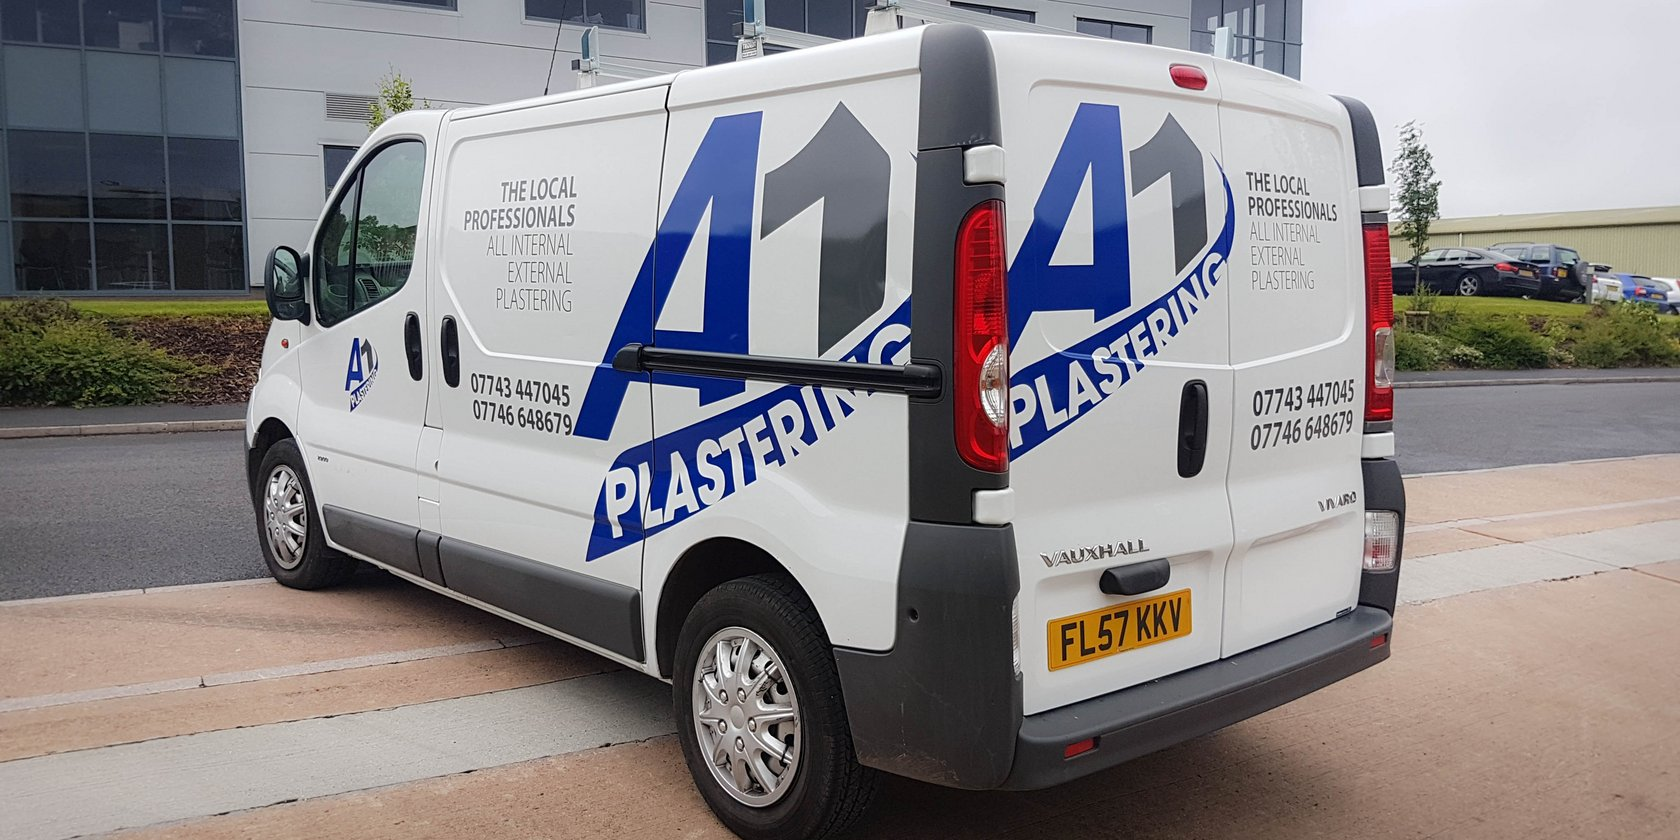 A1 Plastering Vehicle Graphics